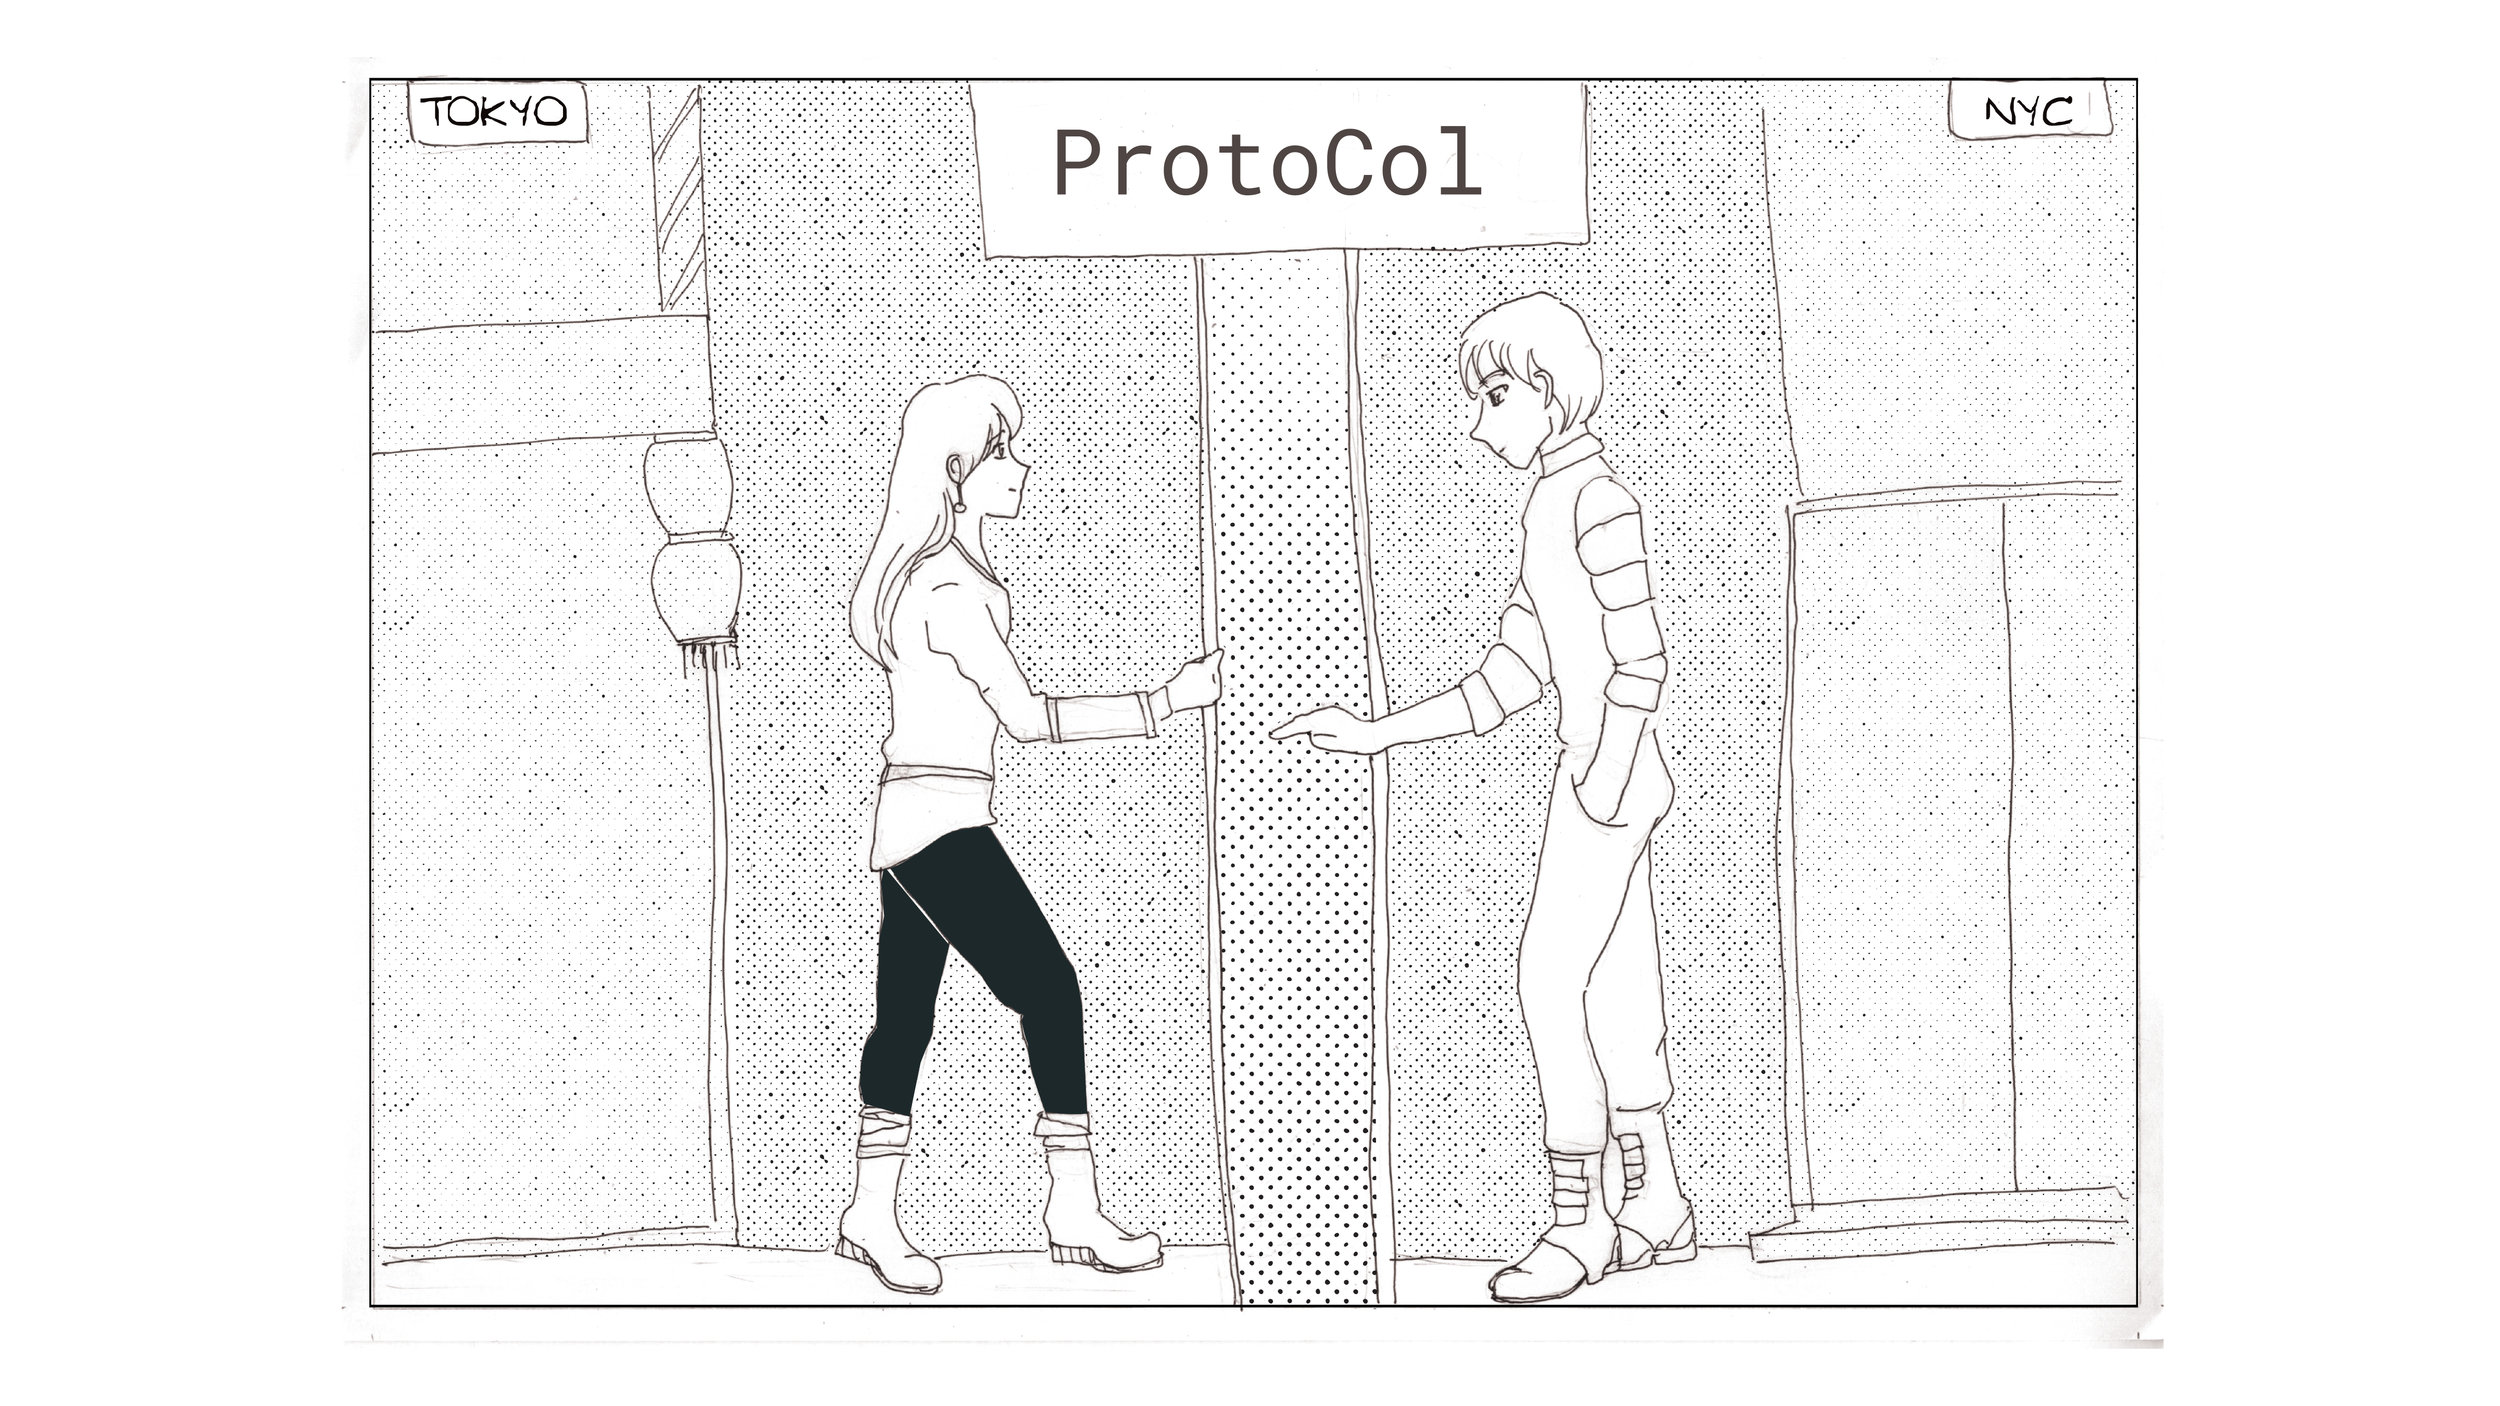 We see them both entering the ProtoCol workspace, which we imagine as an international collaboration hub a bit like a Google Fiber Space or WeWork, which already have offices all over the world.